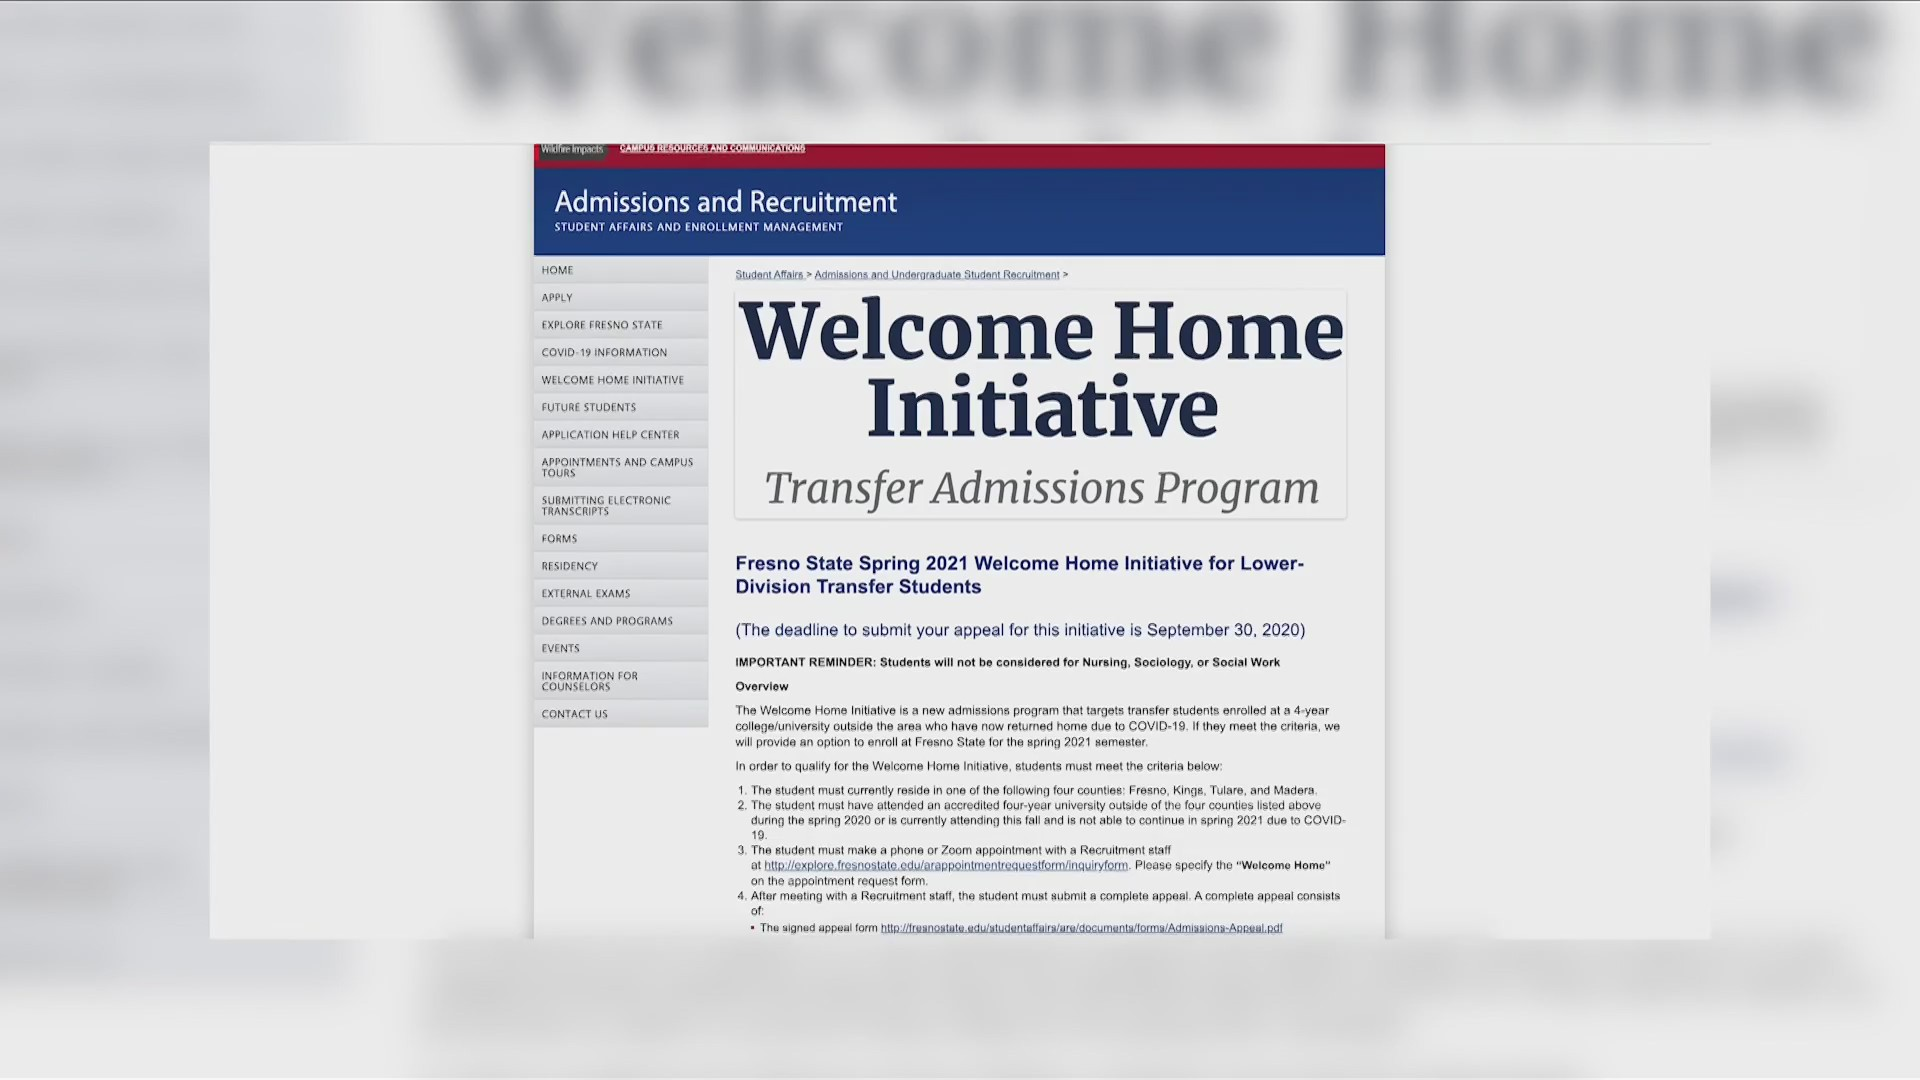 Continuing studies with the 'Welcome Home Initiative'